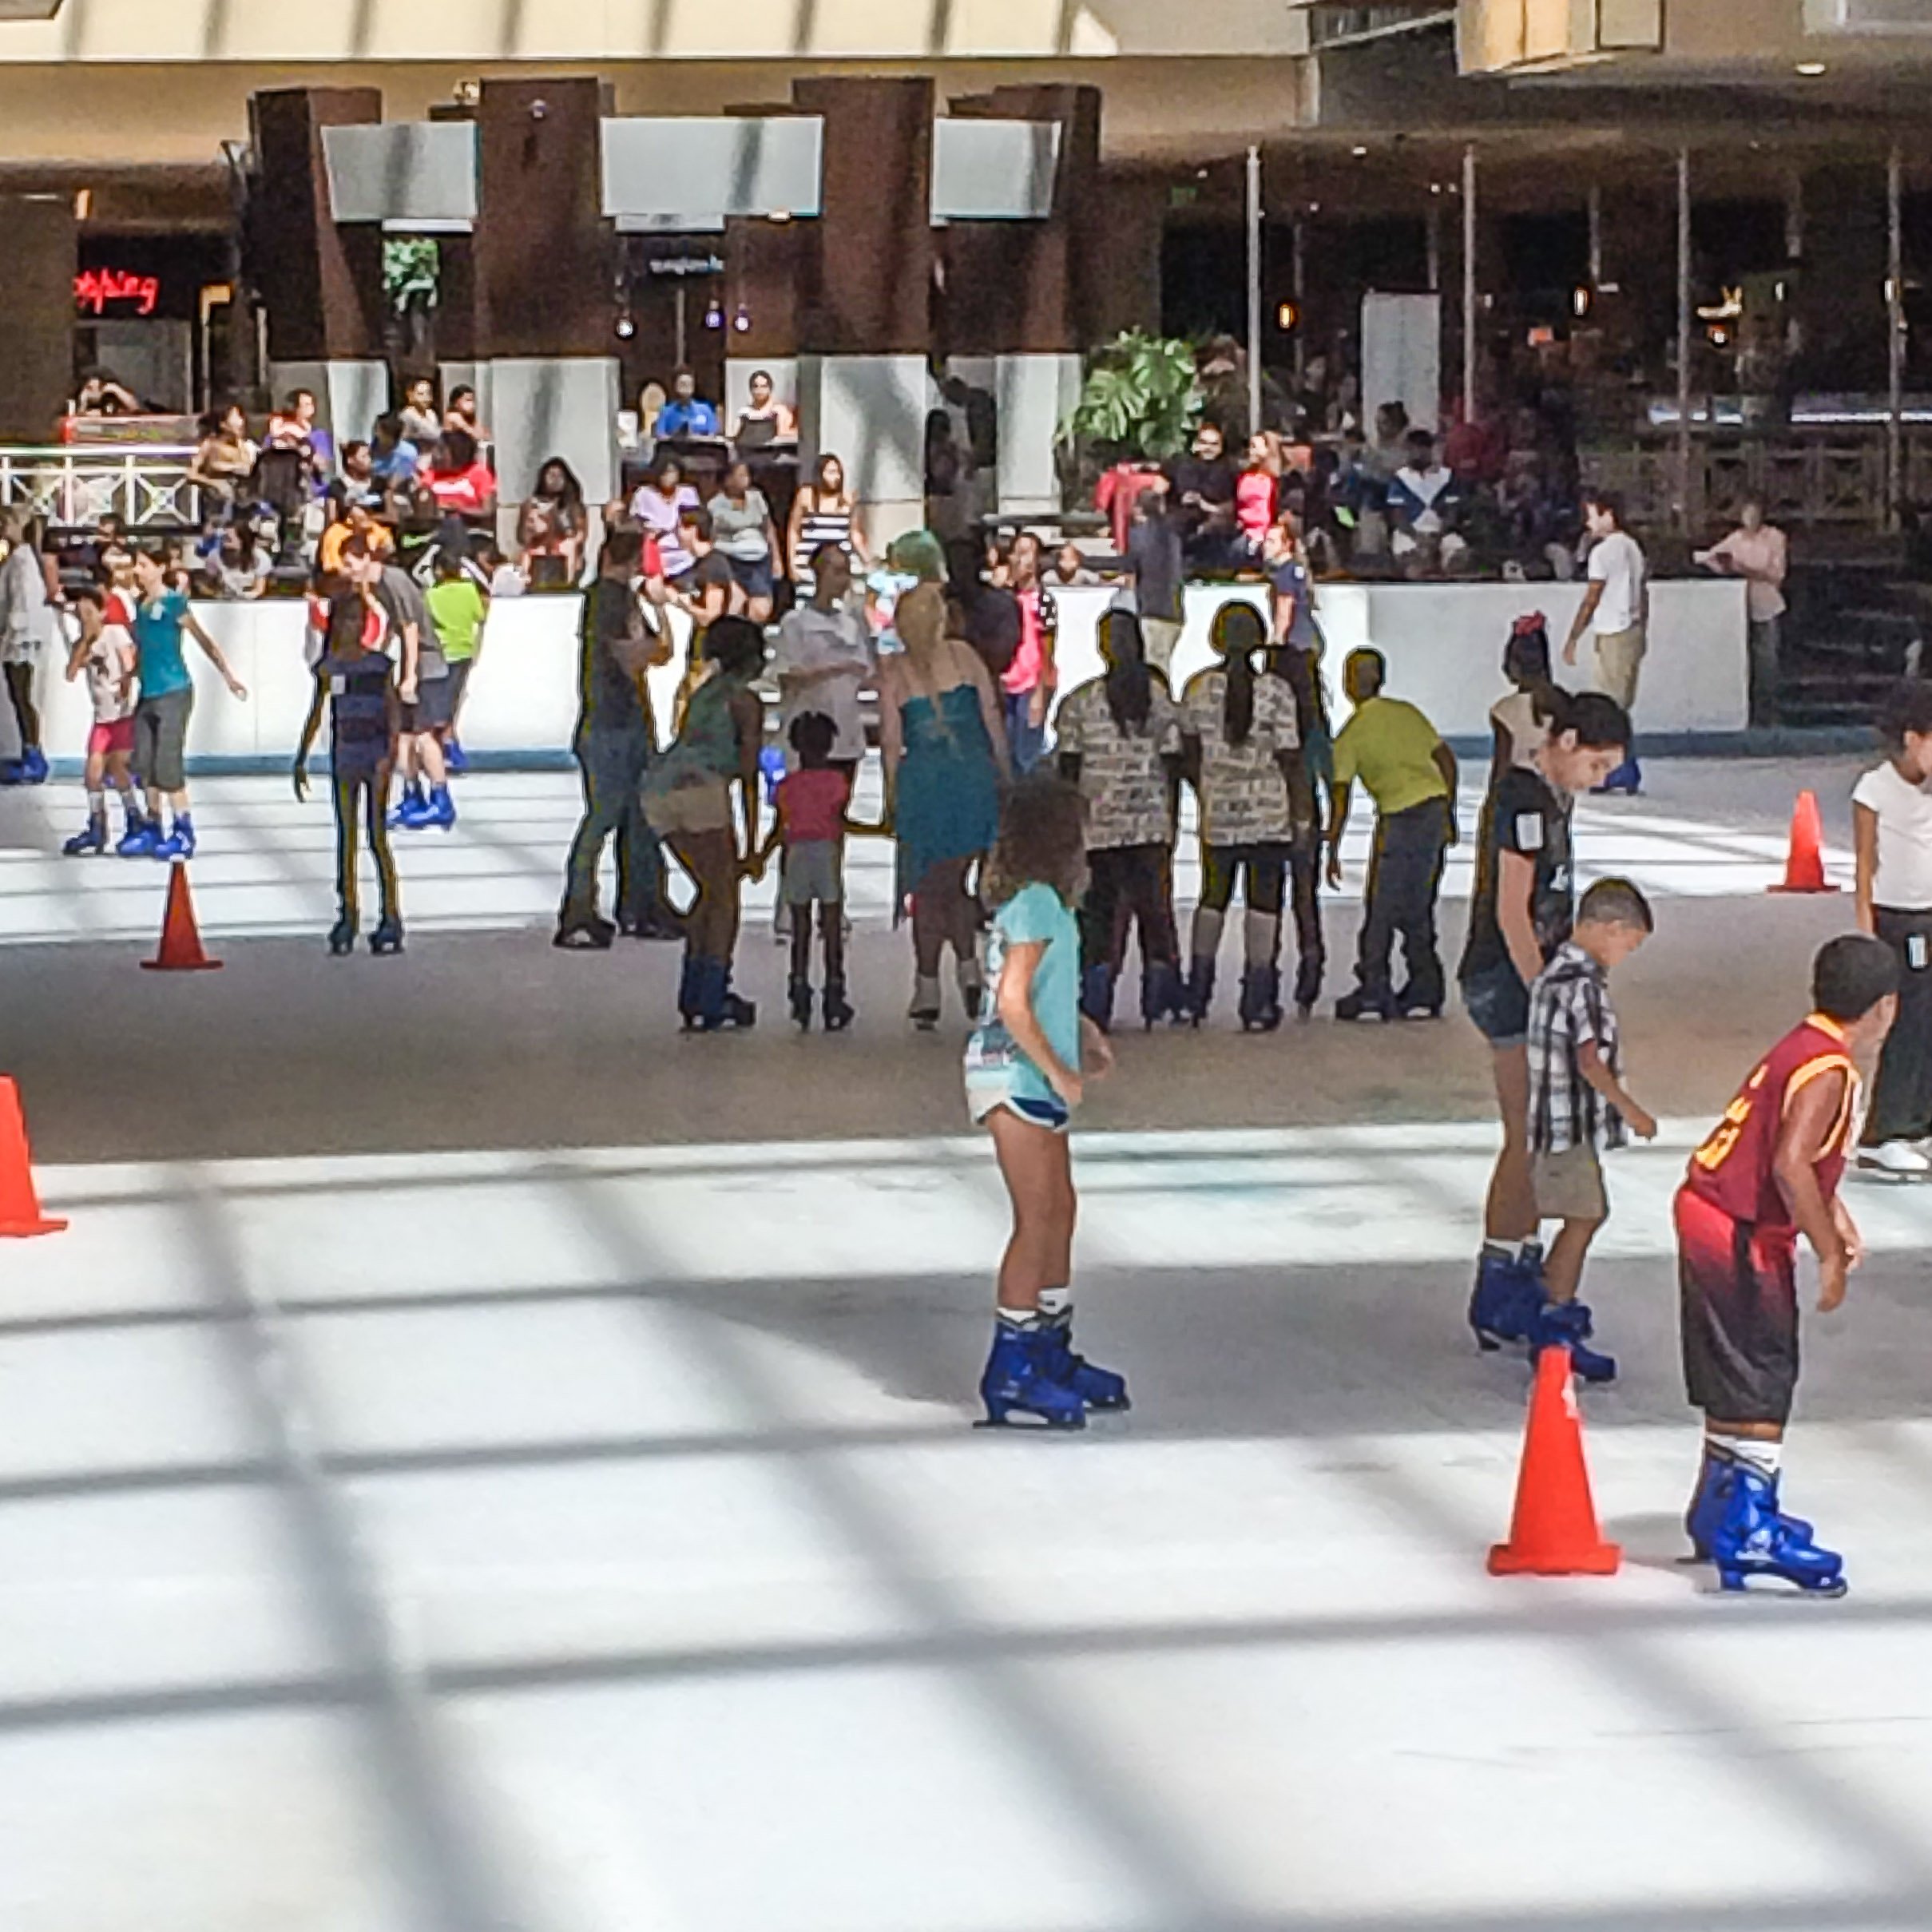 The Houston Galleria mall has...an ice skating rink. Of course it does. In addition to a Cadillac and Tesla showroom, etc.